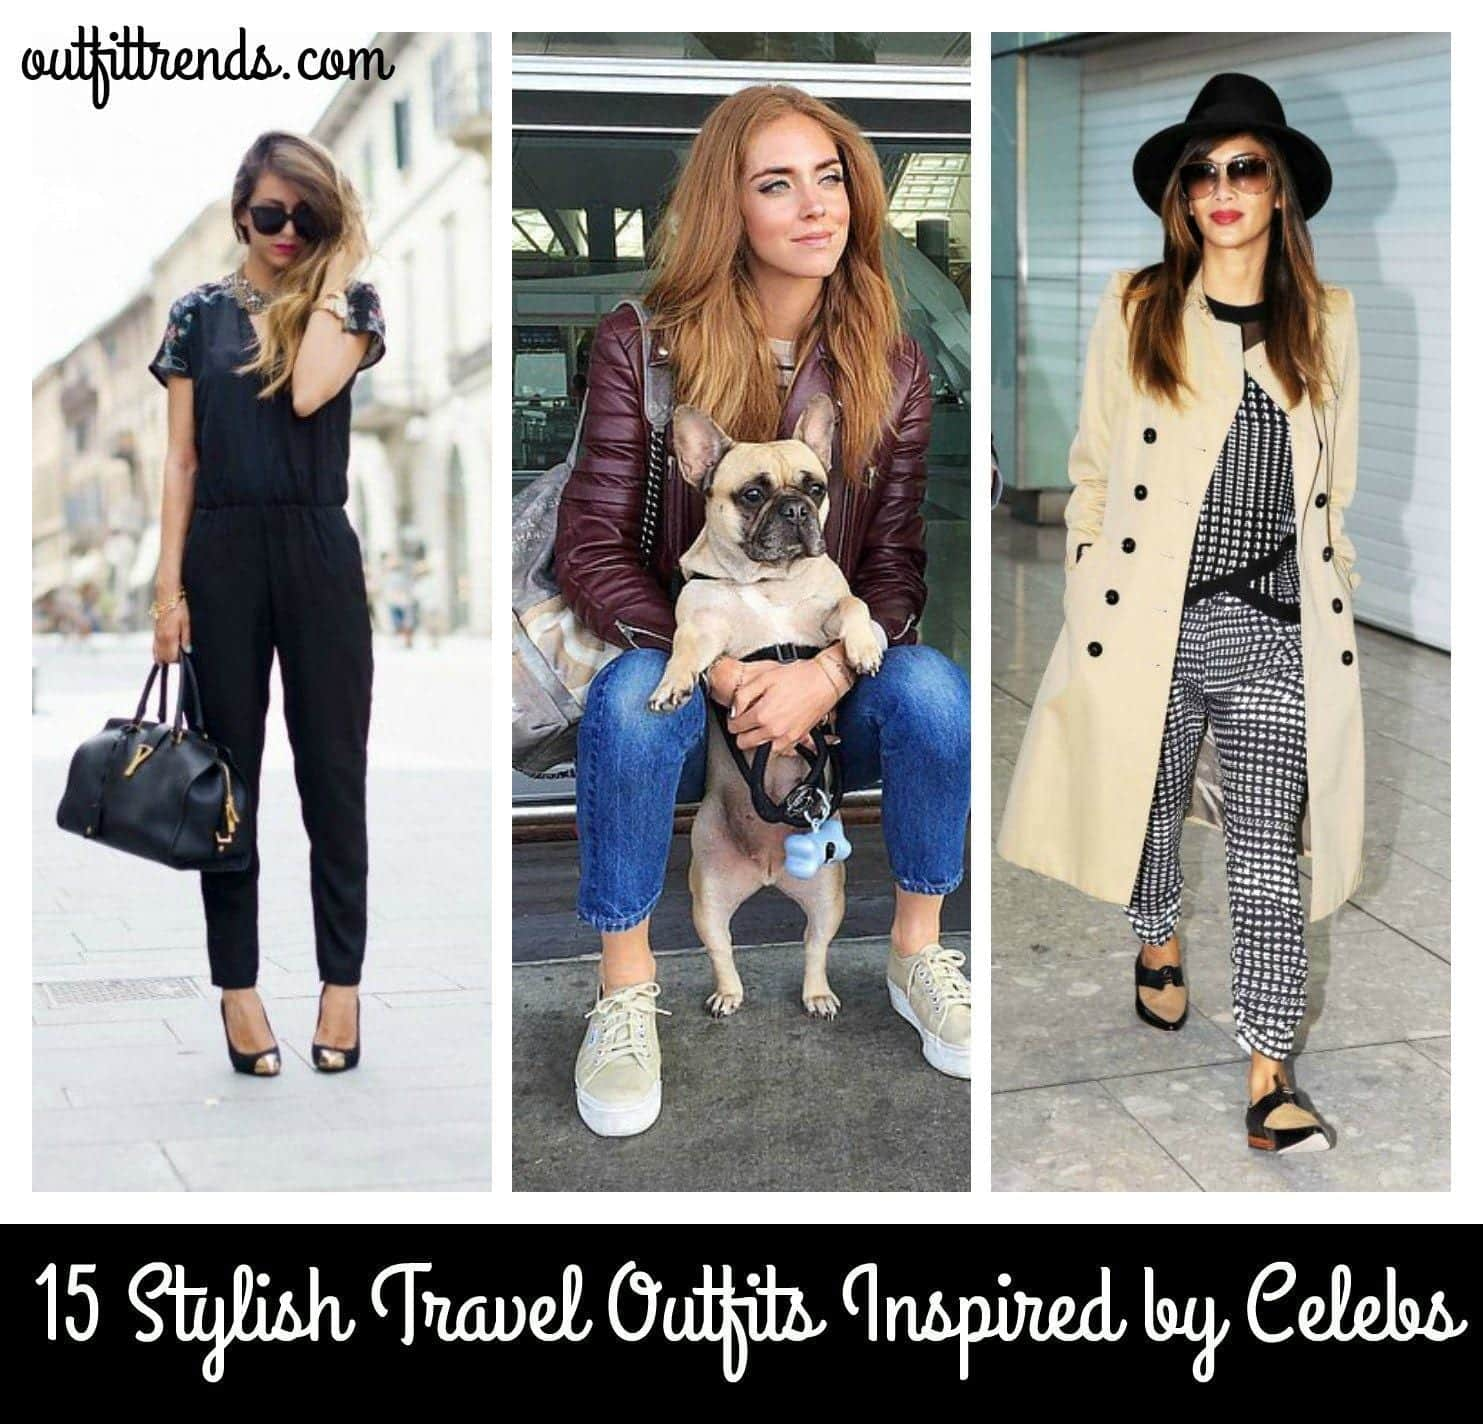 Celeb like Travel Outfits for women (1)